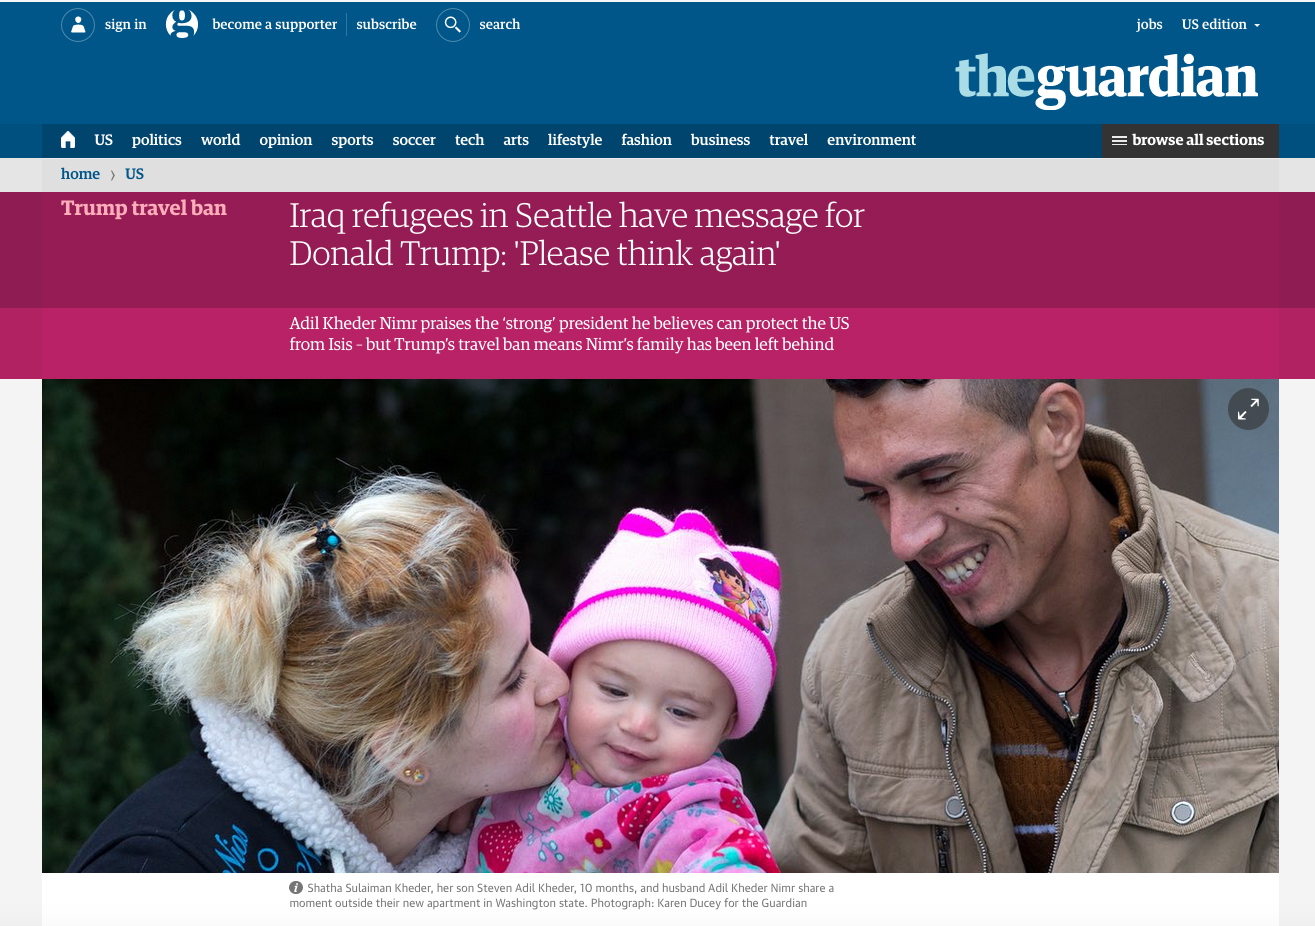 Iraq refugees in Seattle have message for Donald Trump: 'Please think again'. Photos for The Guardian, January 31, 2017.